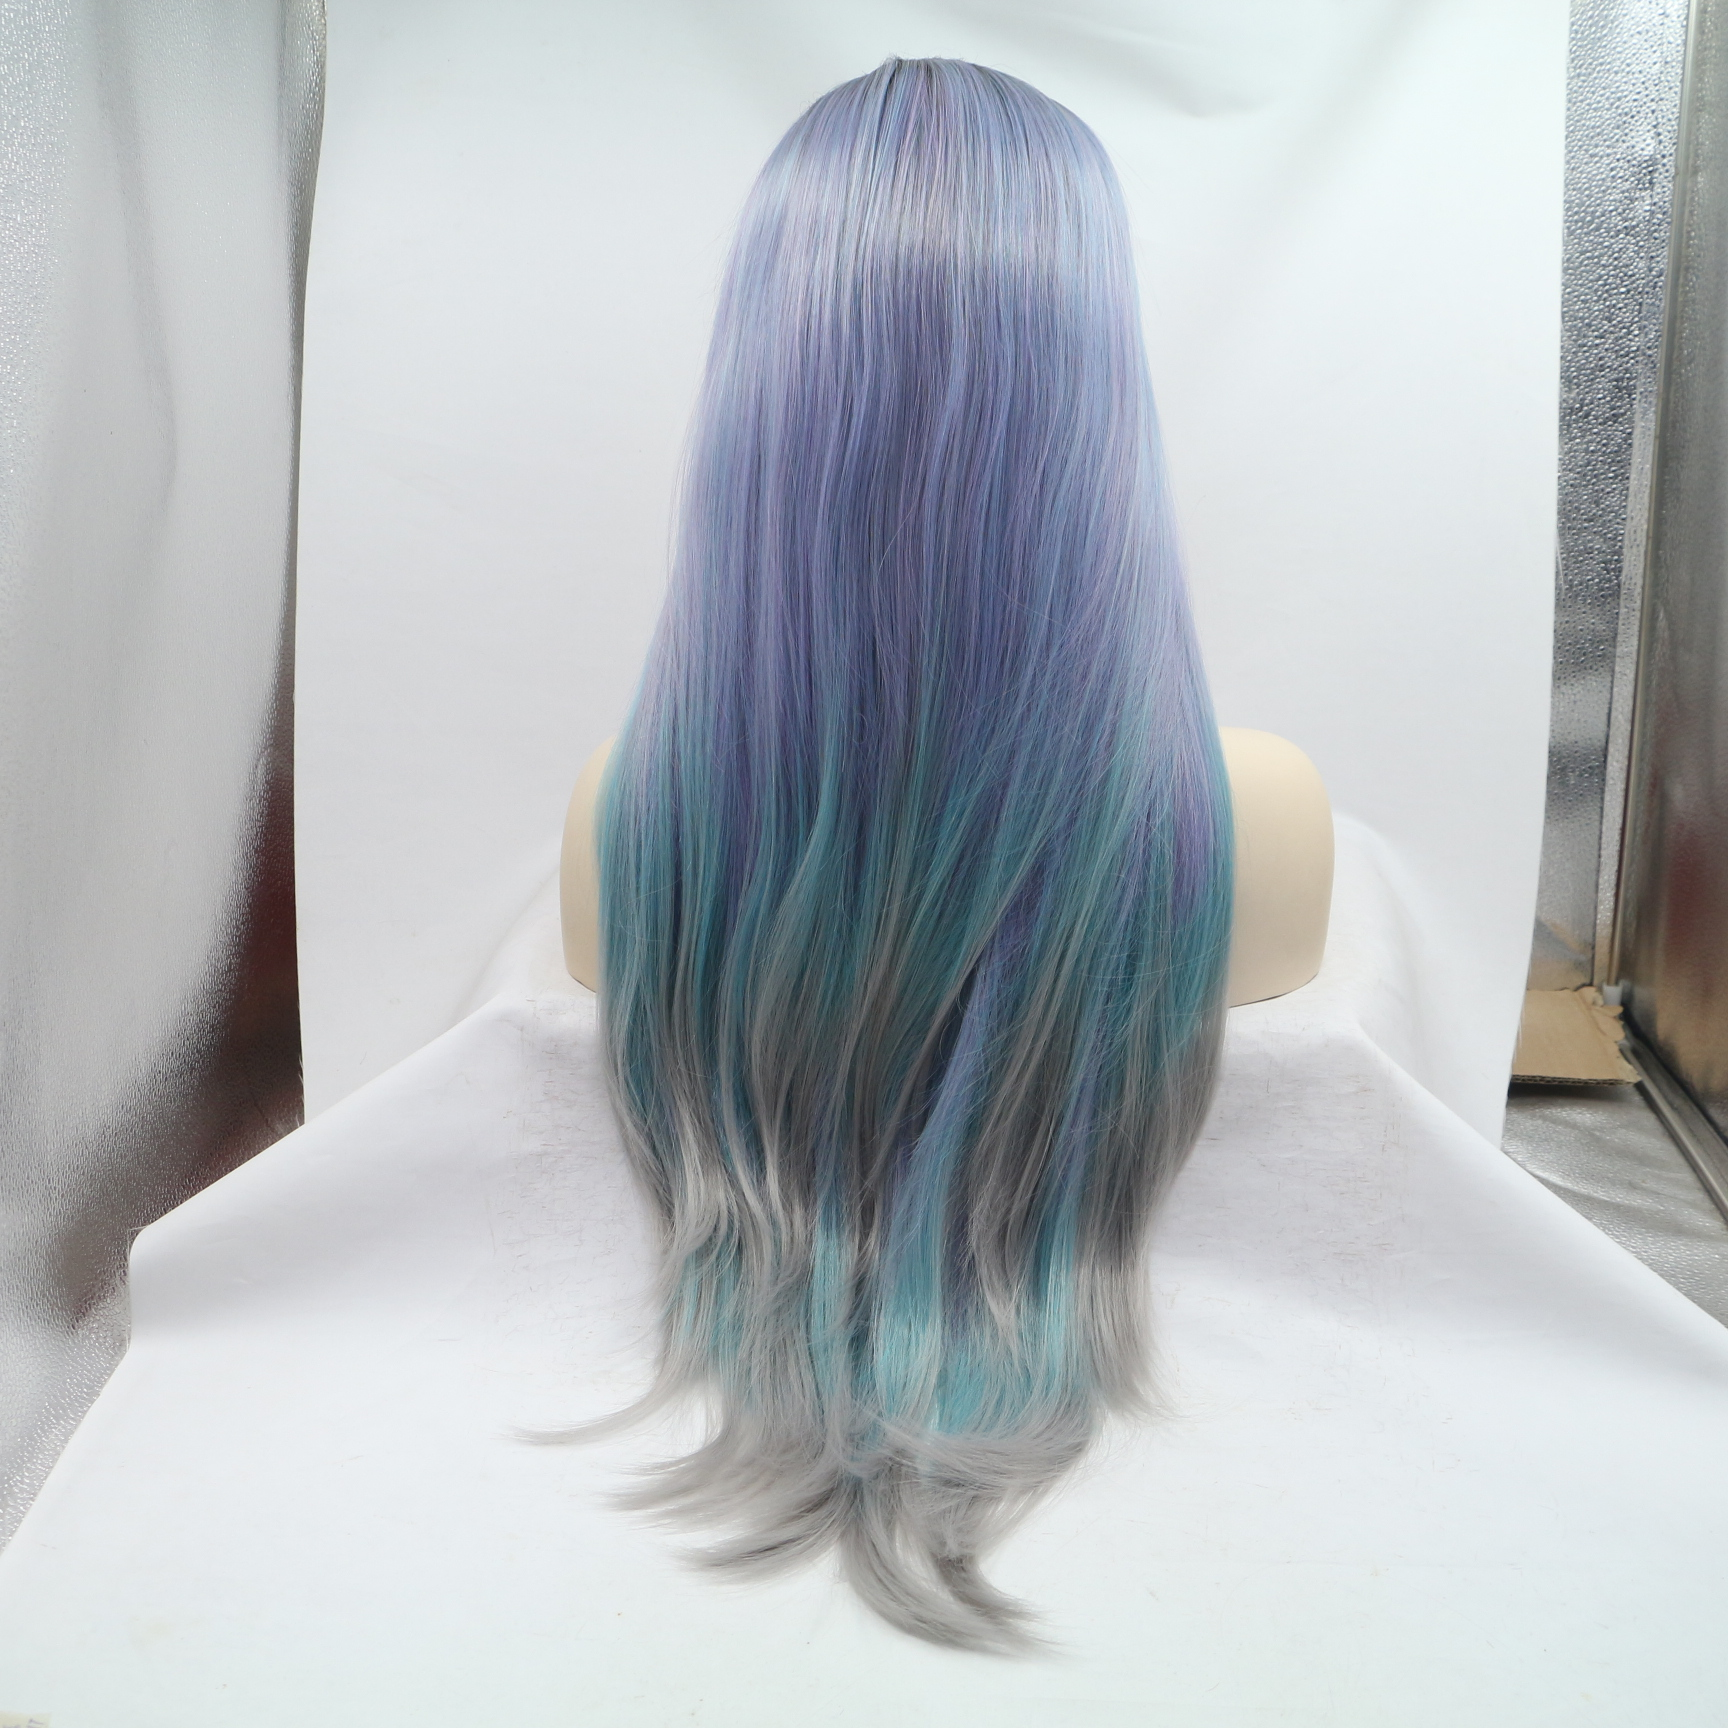 Description Wallpaper For Mixing Blue And Purple Hair Dye